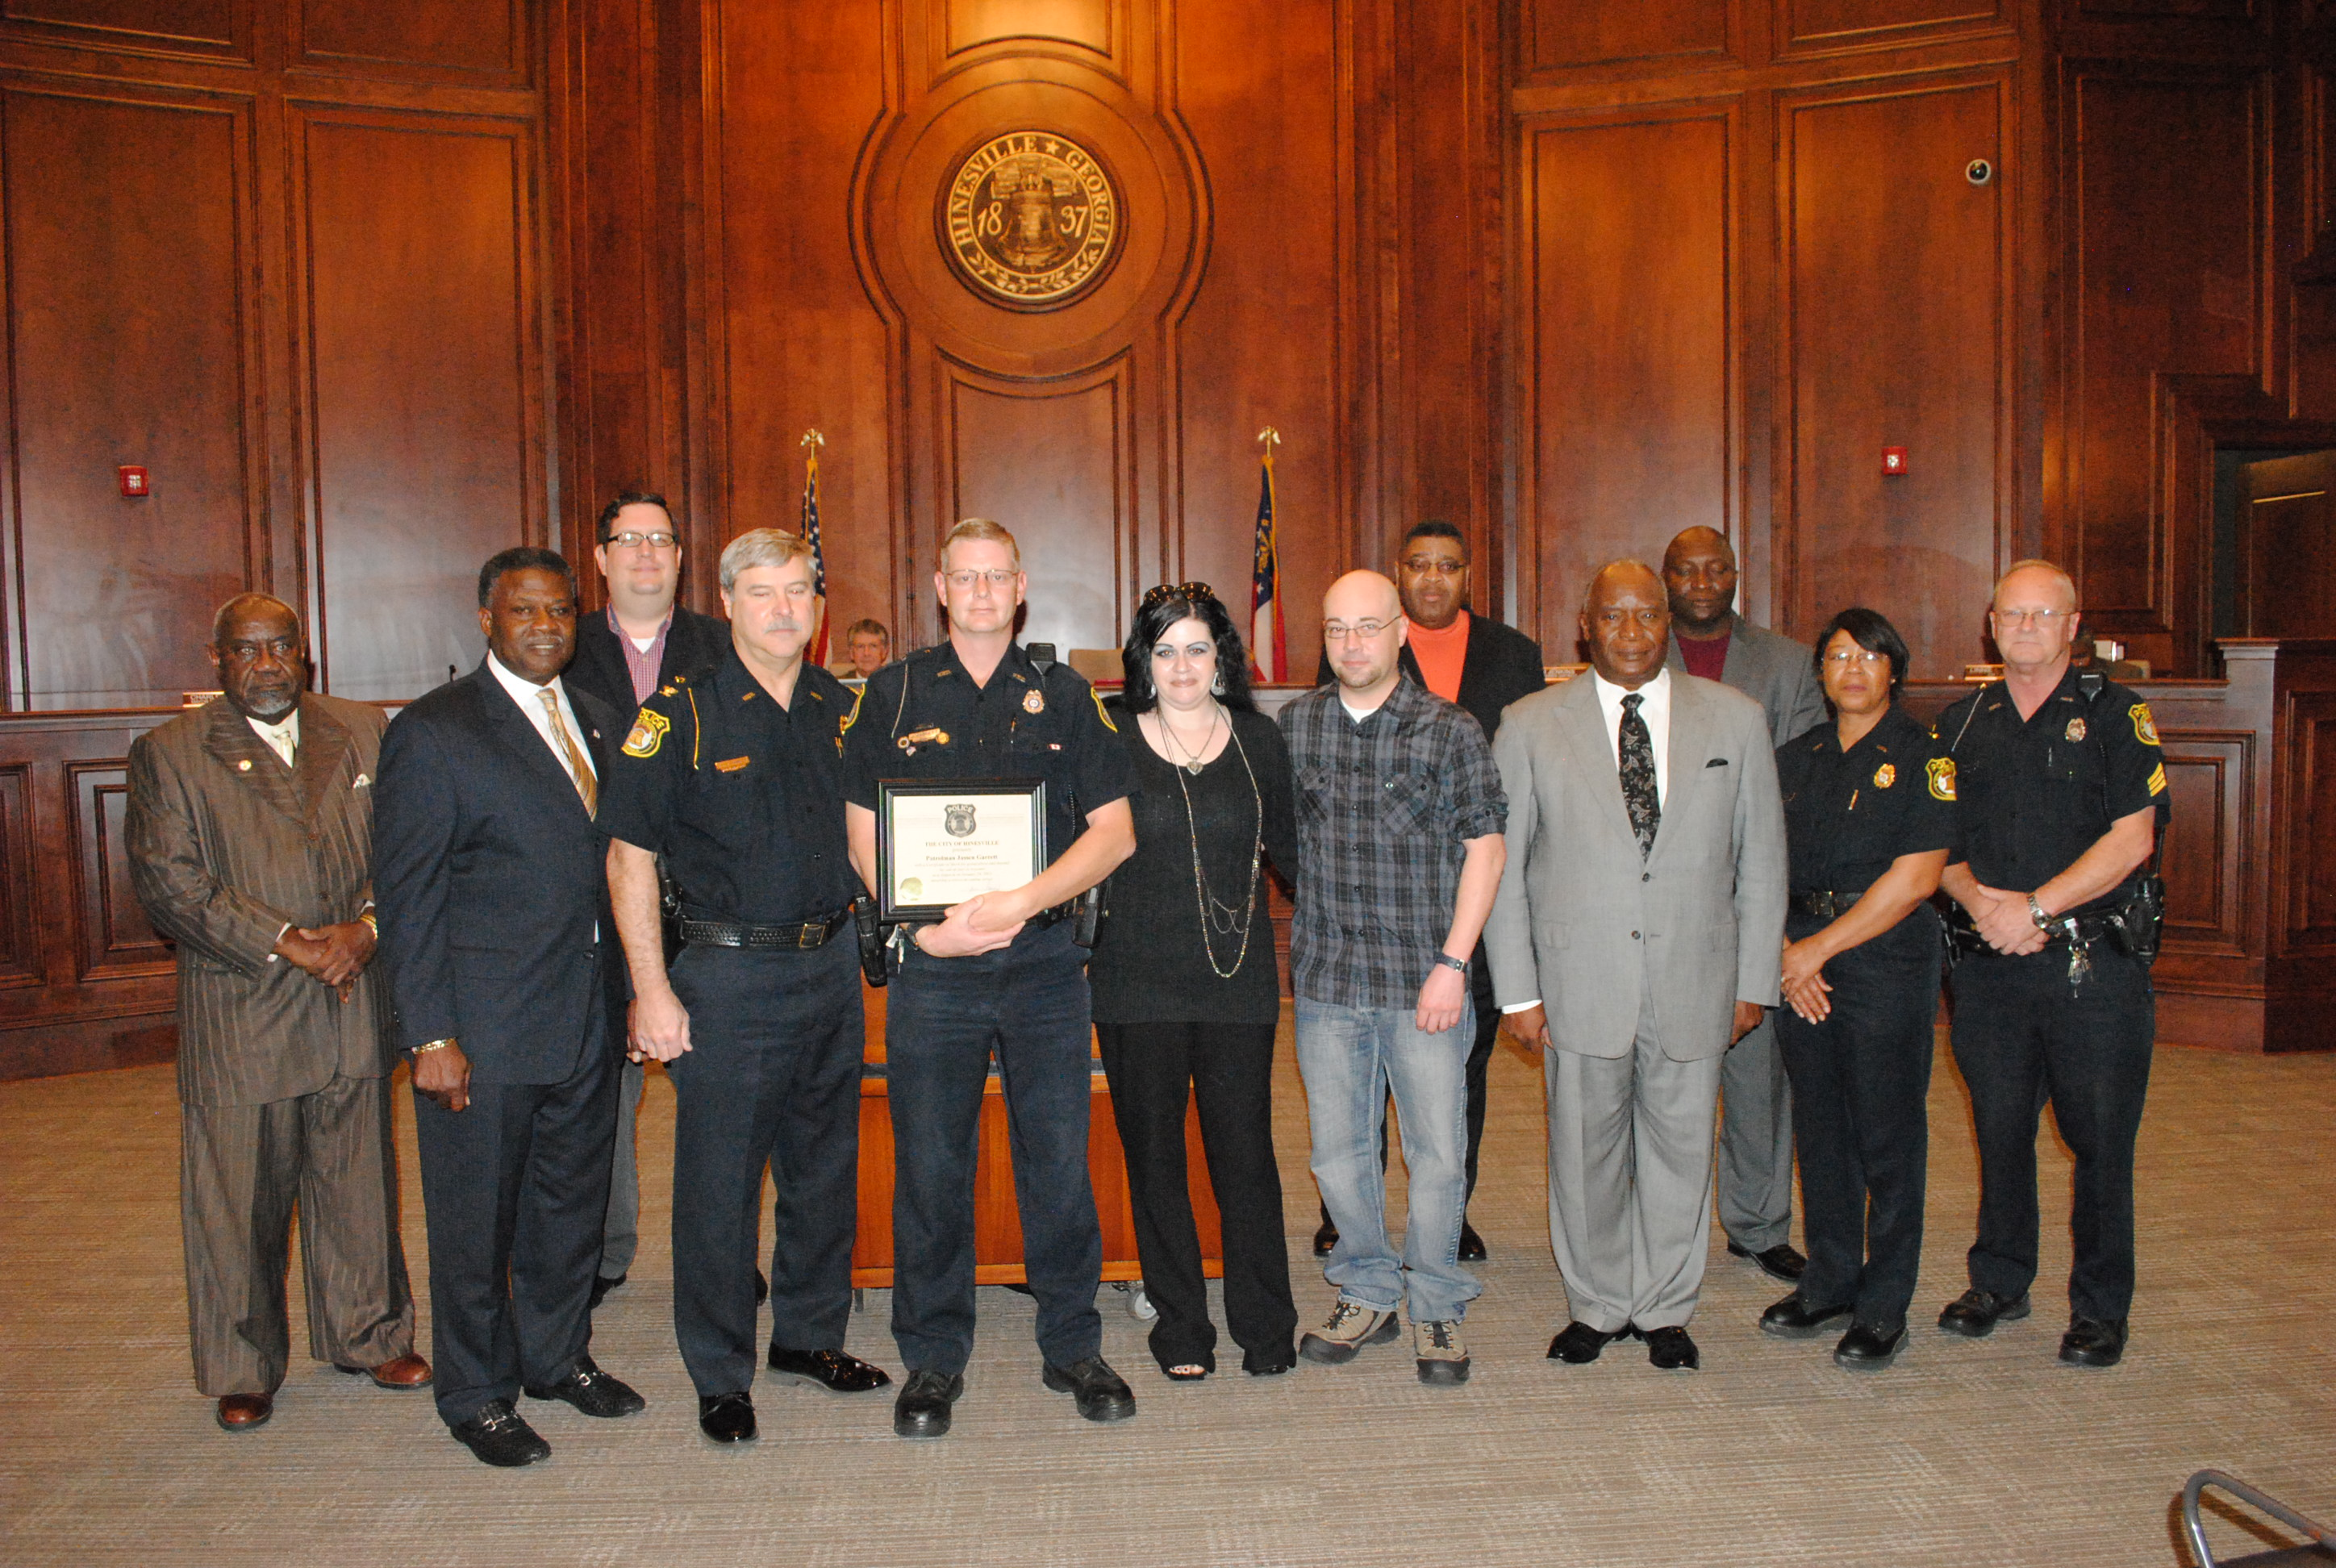 March 1, 2012 Council Meeting